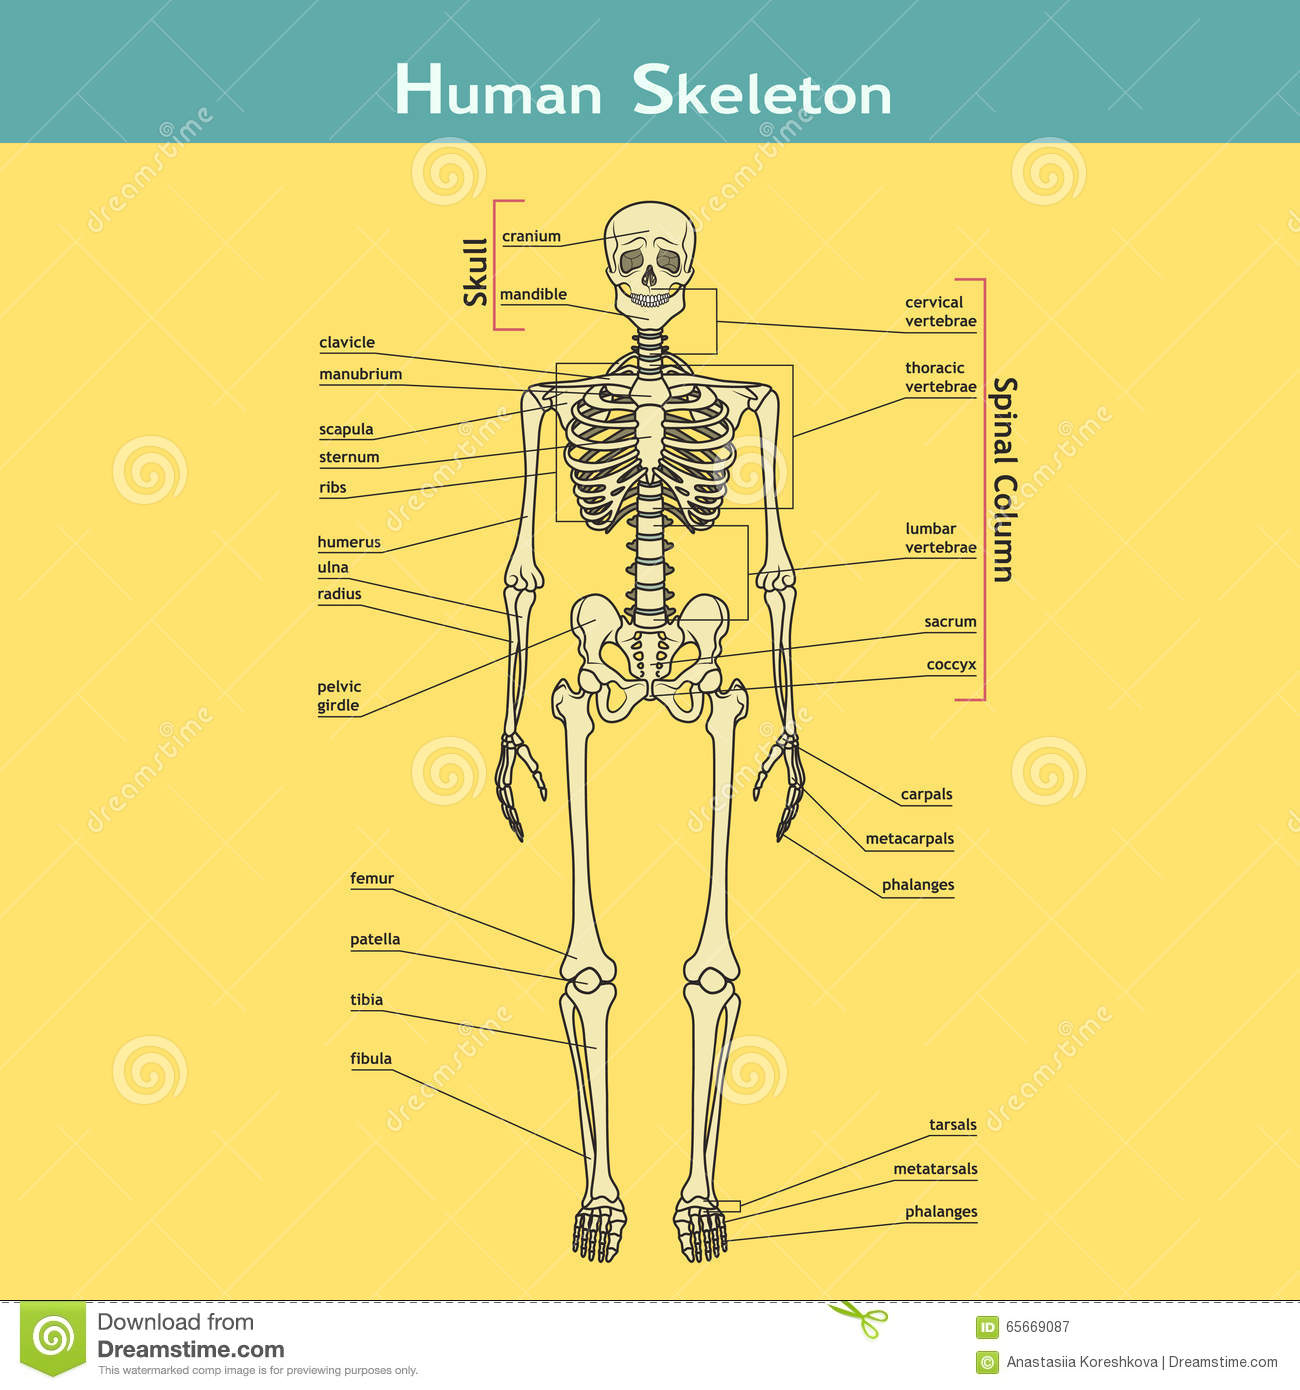 Human Skeleton With Explanations Stock Vector Illustration Of